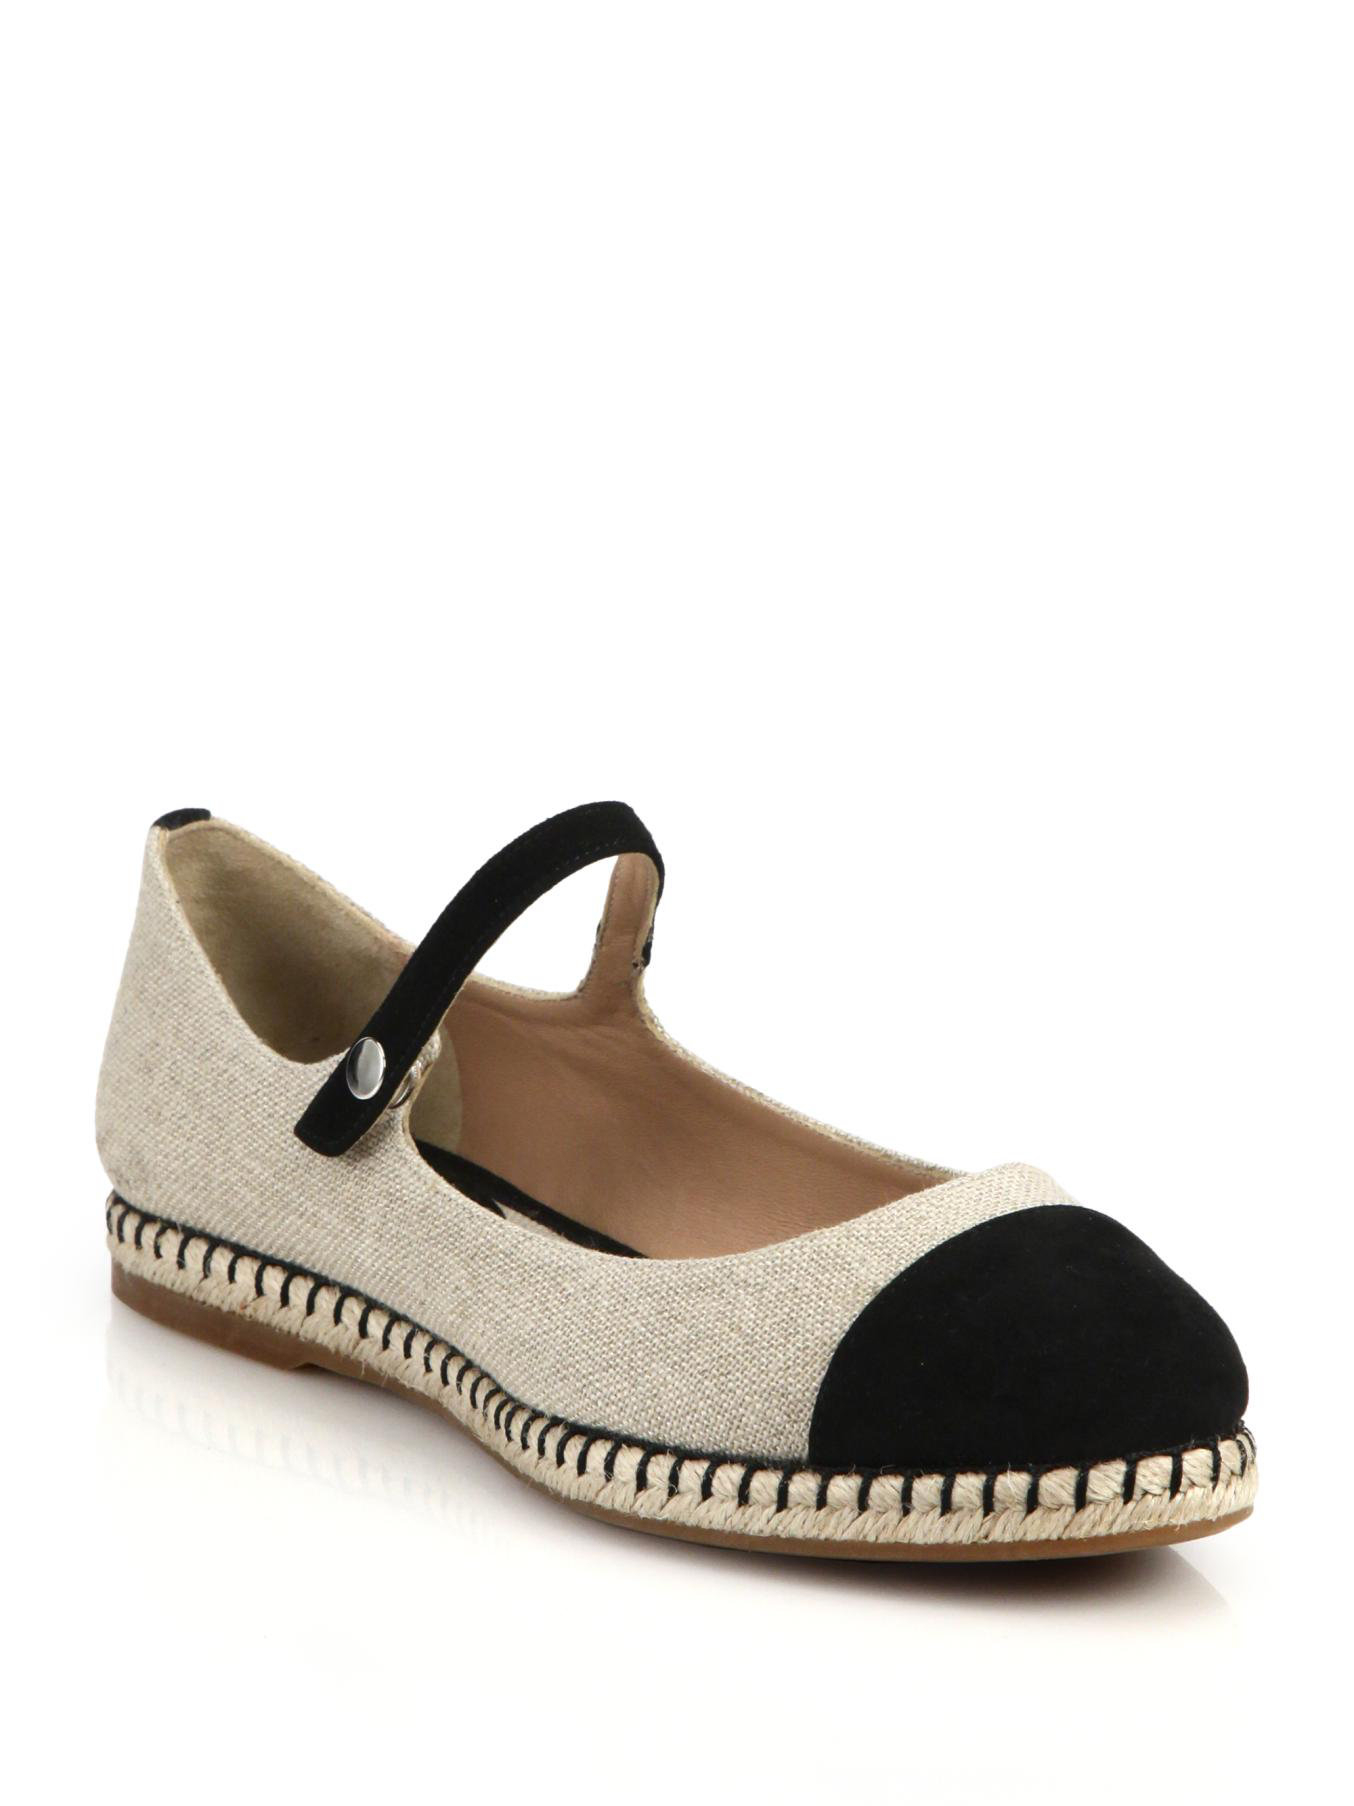 Chaussures - Espadrilles Tabitha Simmons 3NGj9Xe